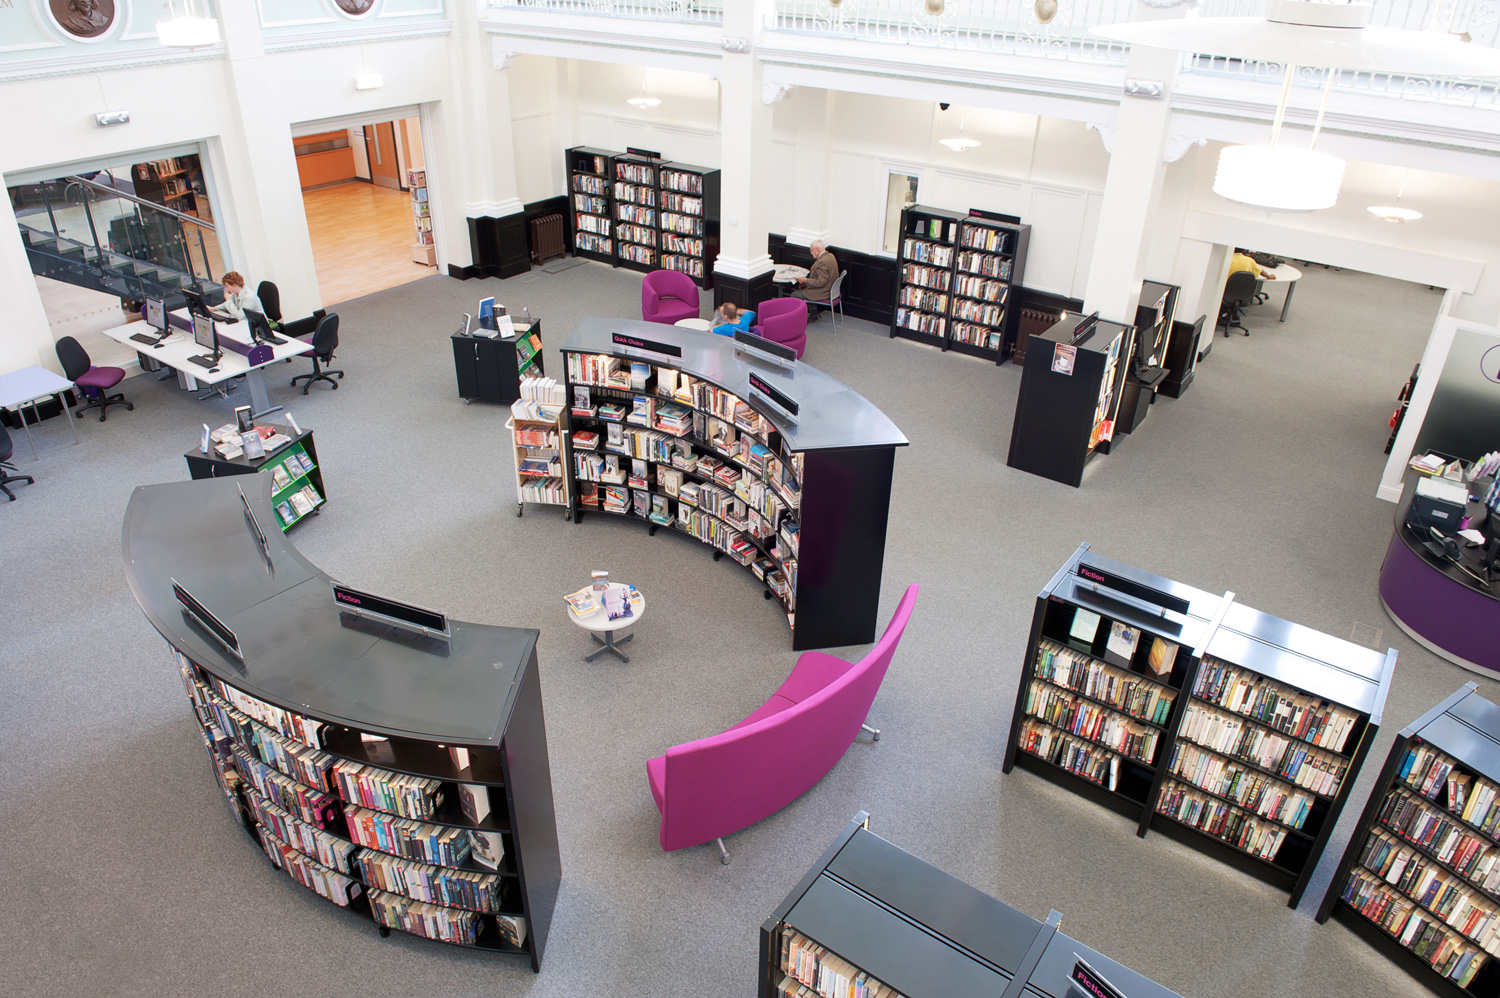 62_eccles_public_library_uk_003